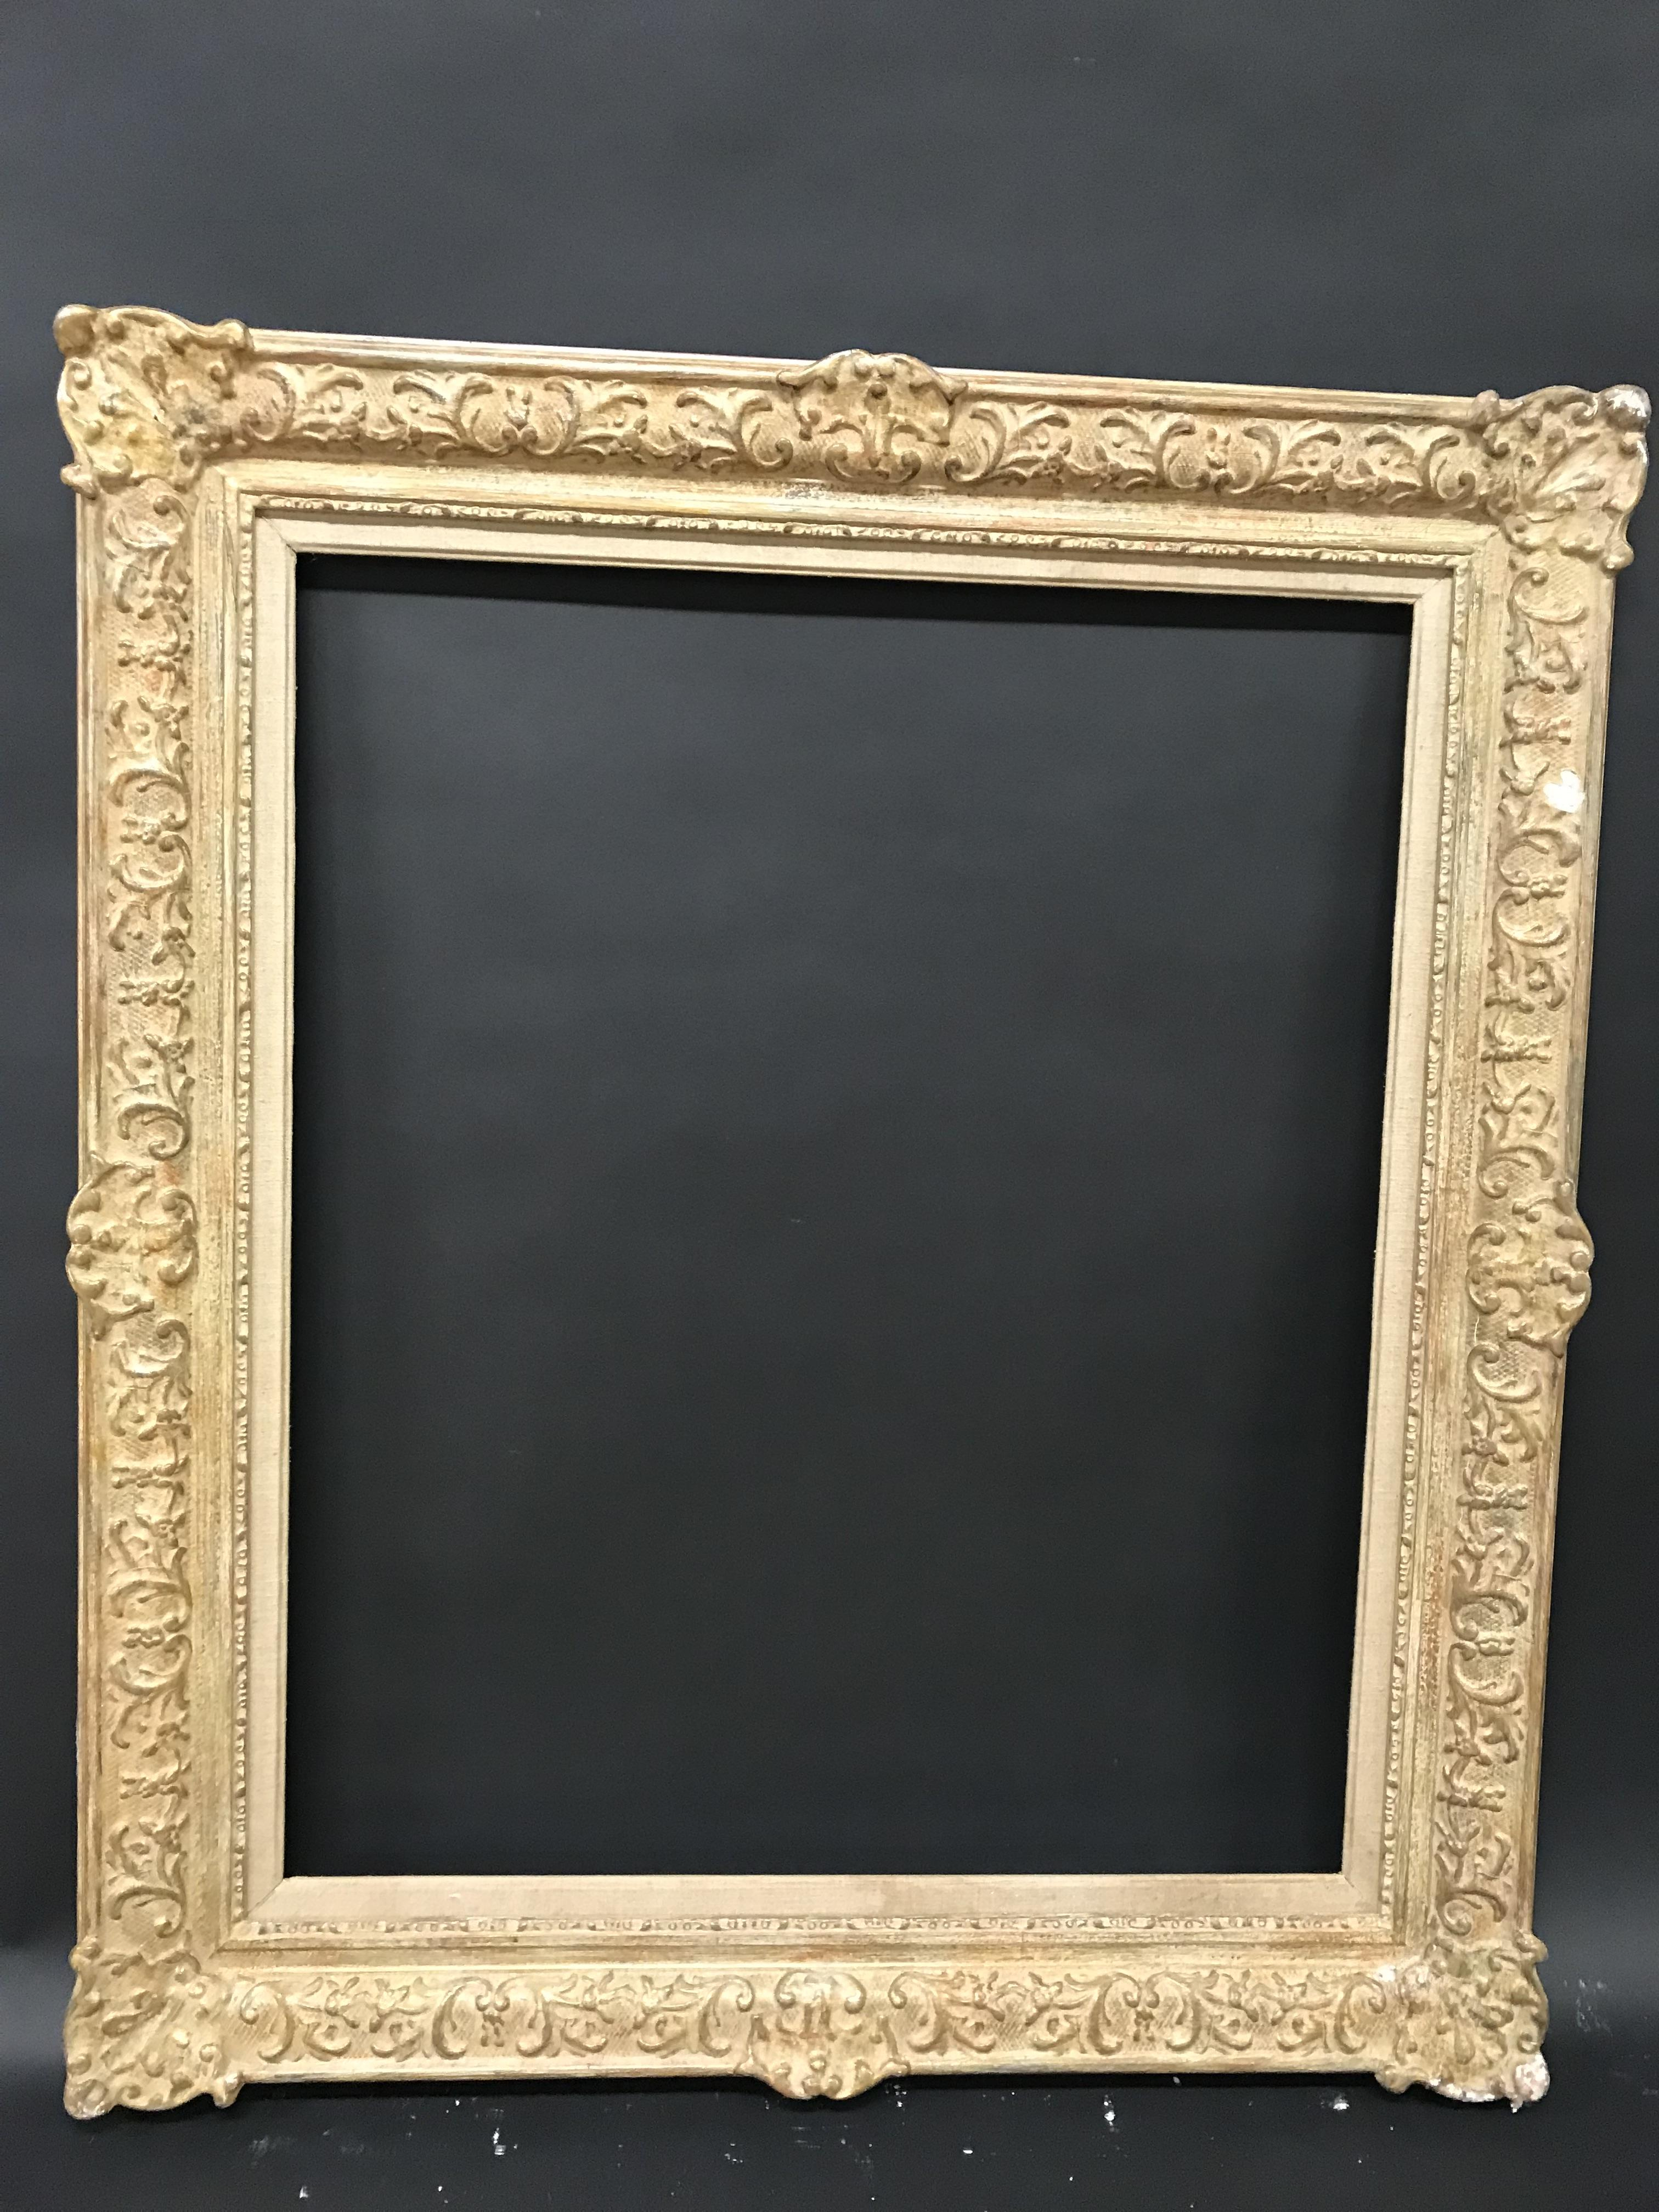 Lot 4 - 20th Century English School. A Painted Composition Frame, with Swept Centres and Corners, with